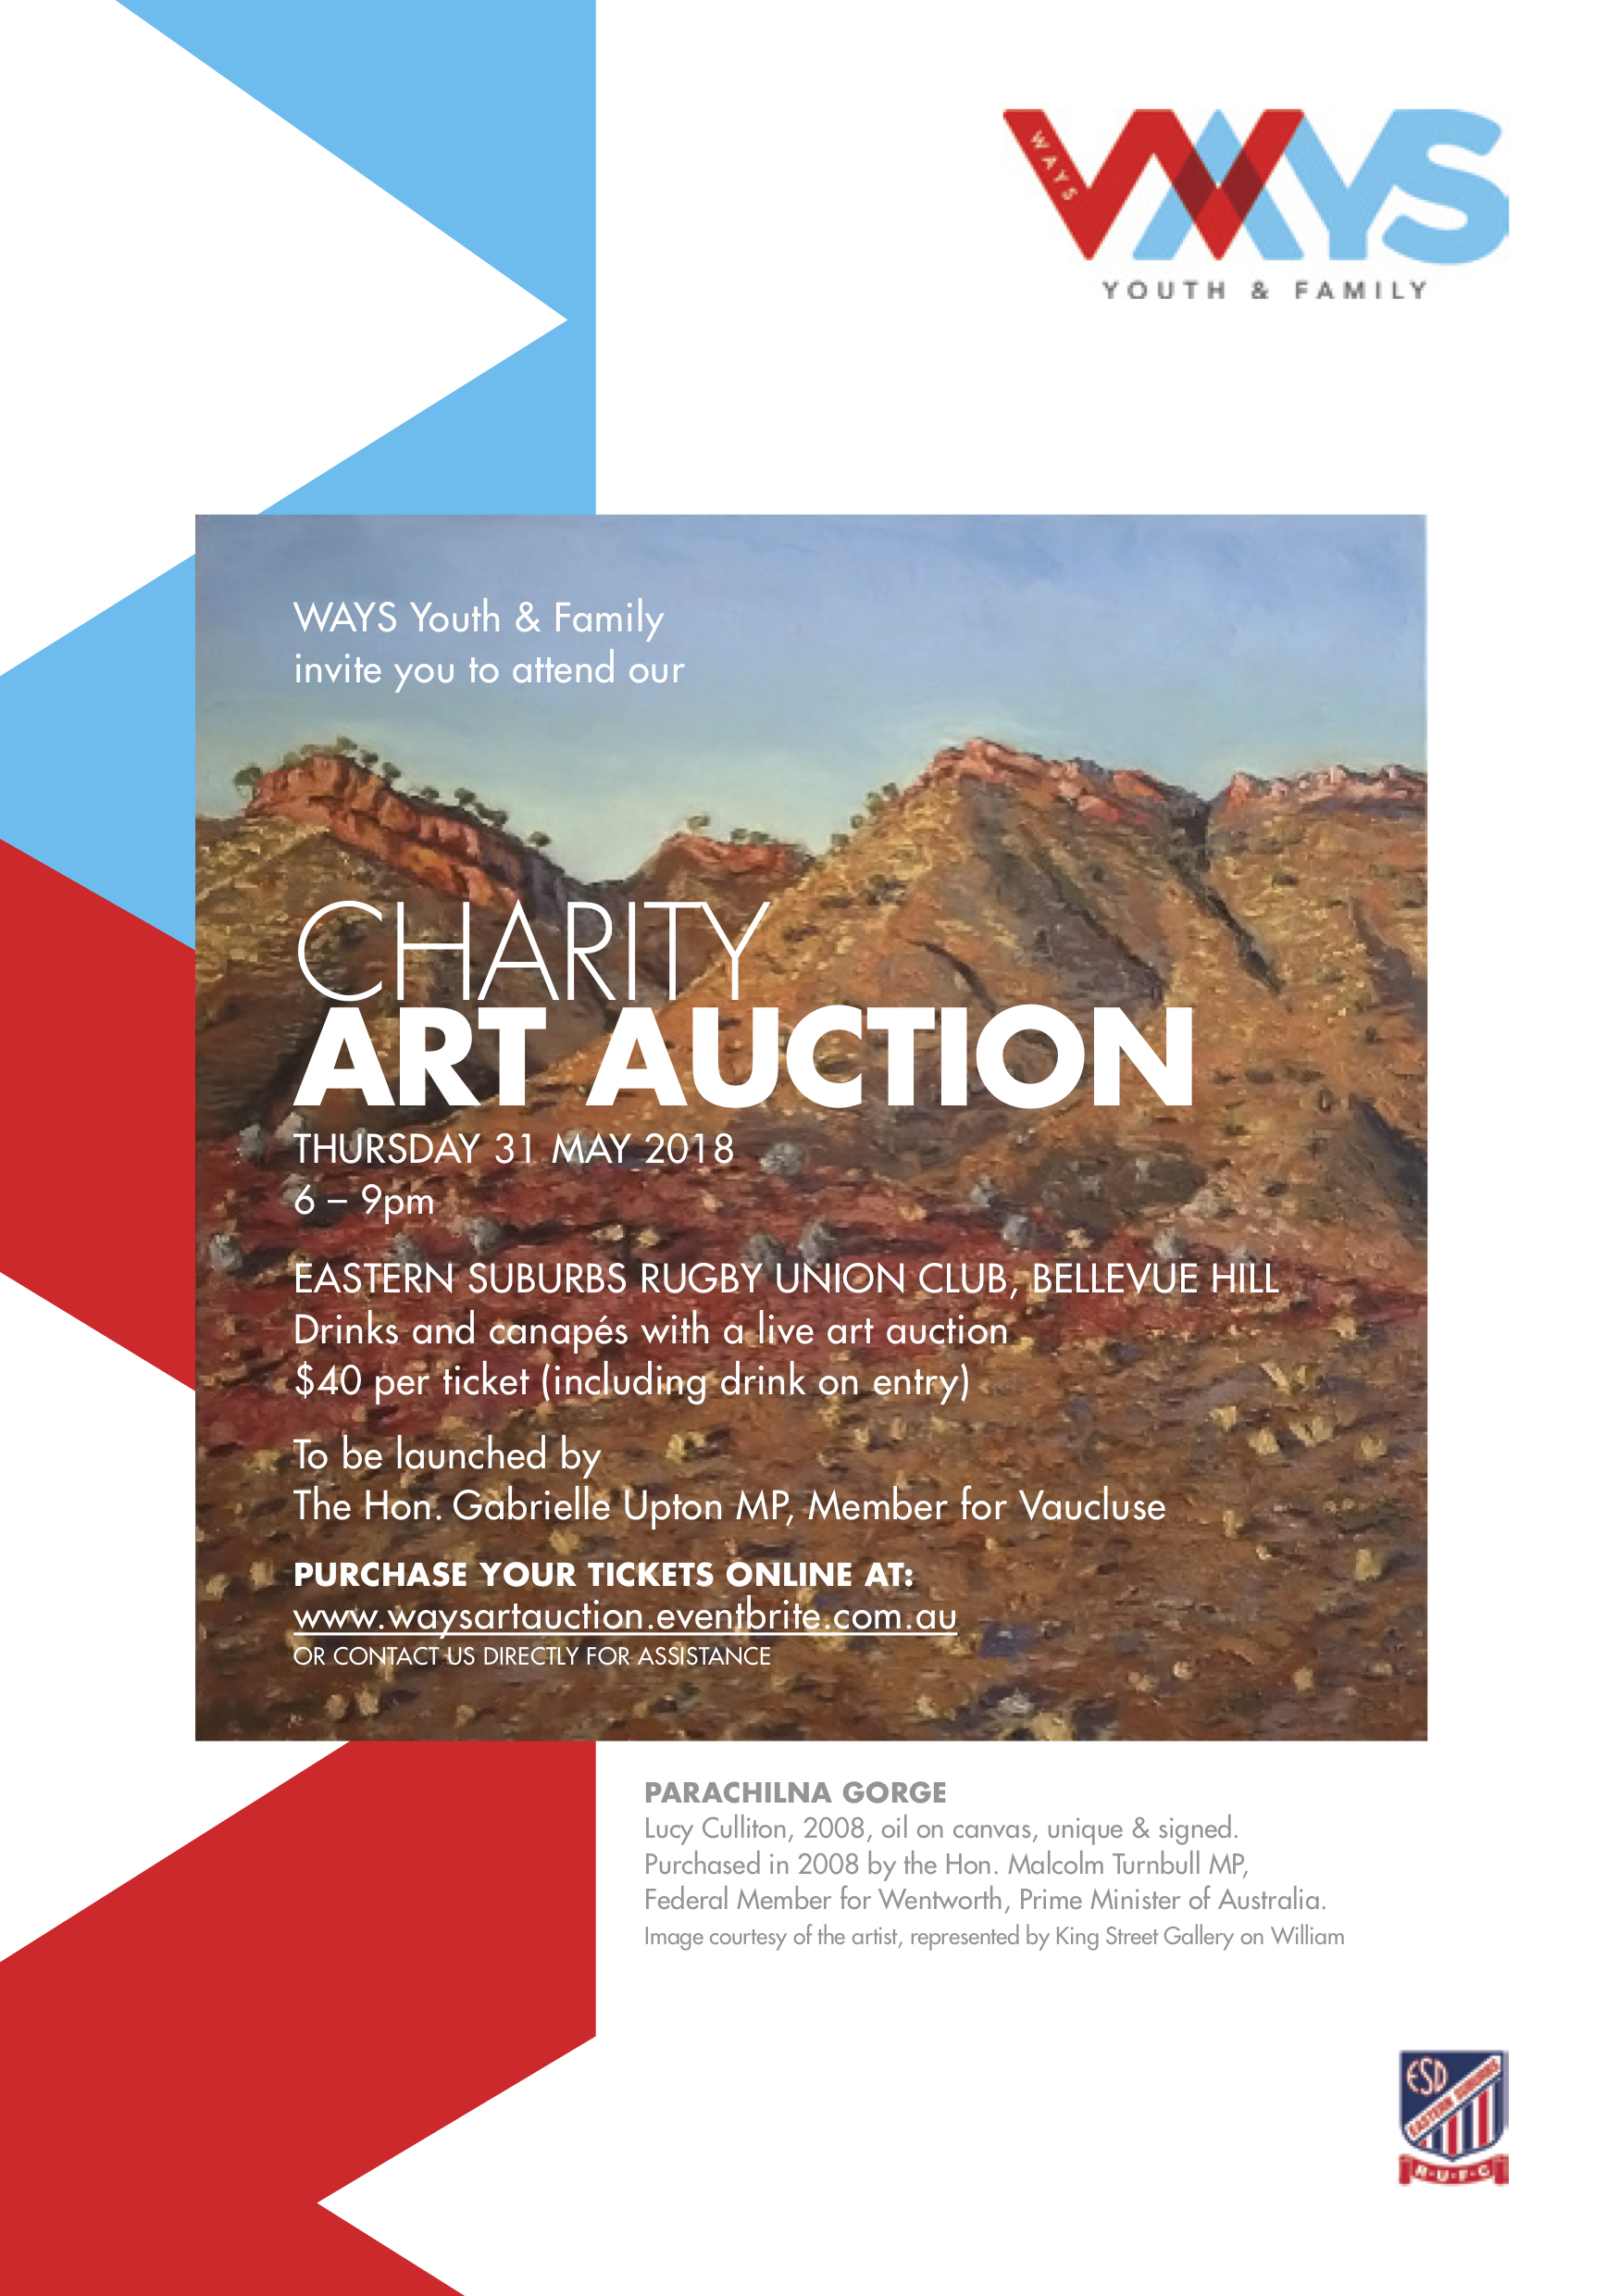 WAYS Youth and Family Charity Art Auction